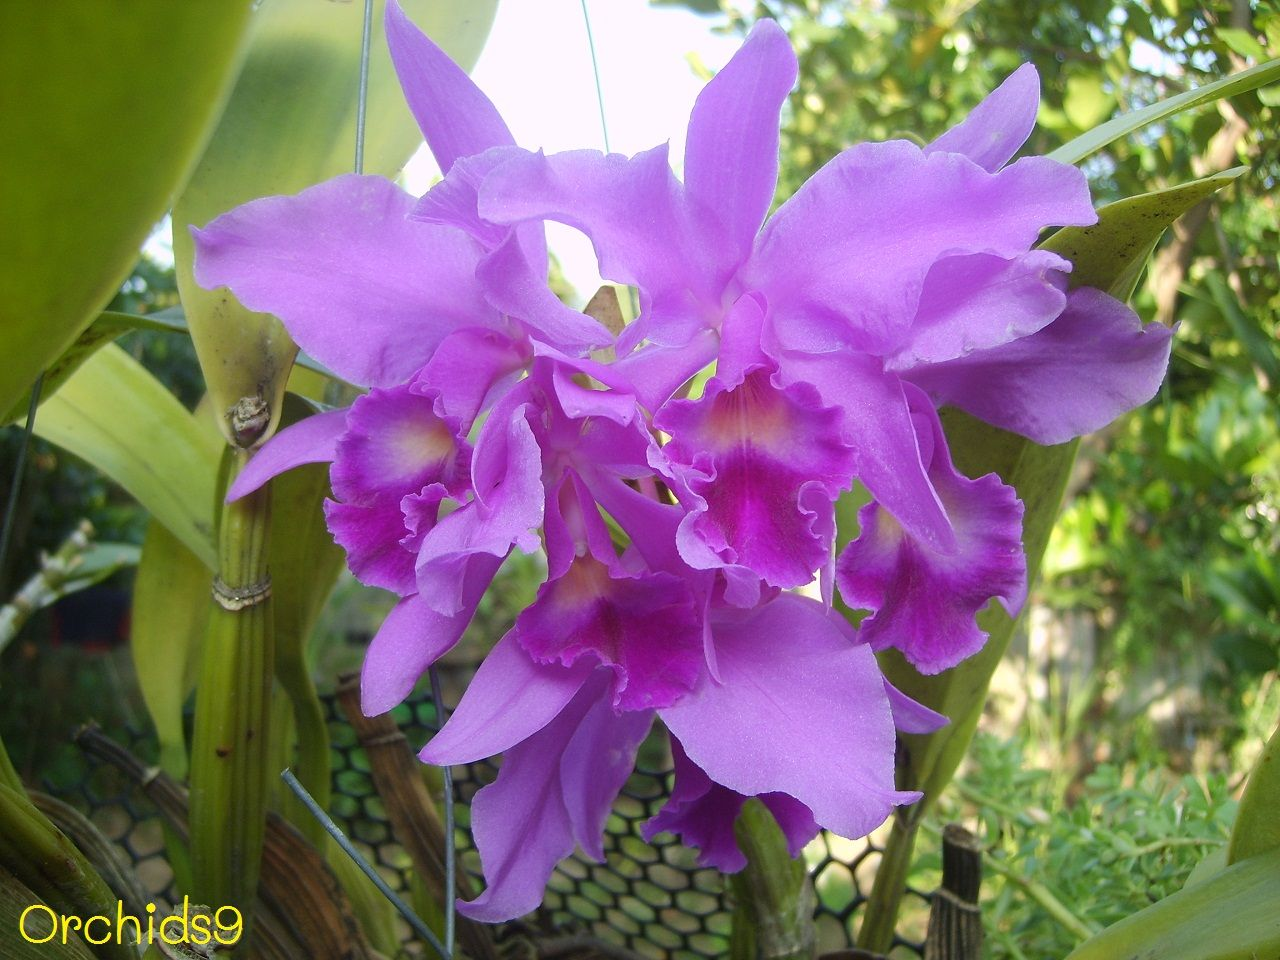 Cattleya Portia Blue Orchid Flowers Pictures Orchid Flower Blue Orchid Flower Cattleya Orchid